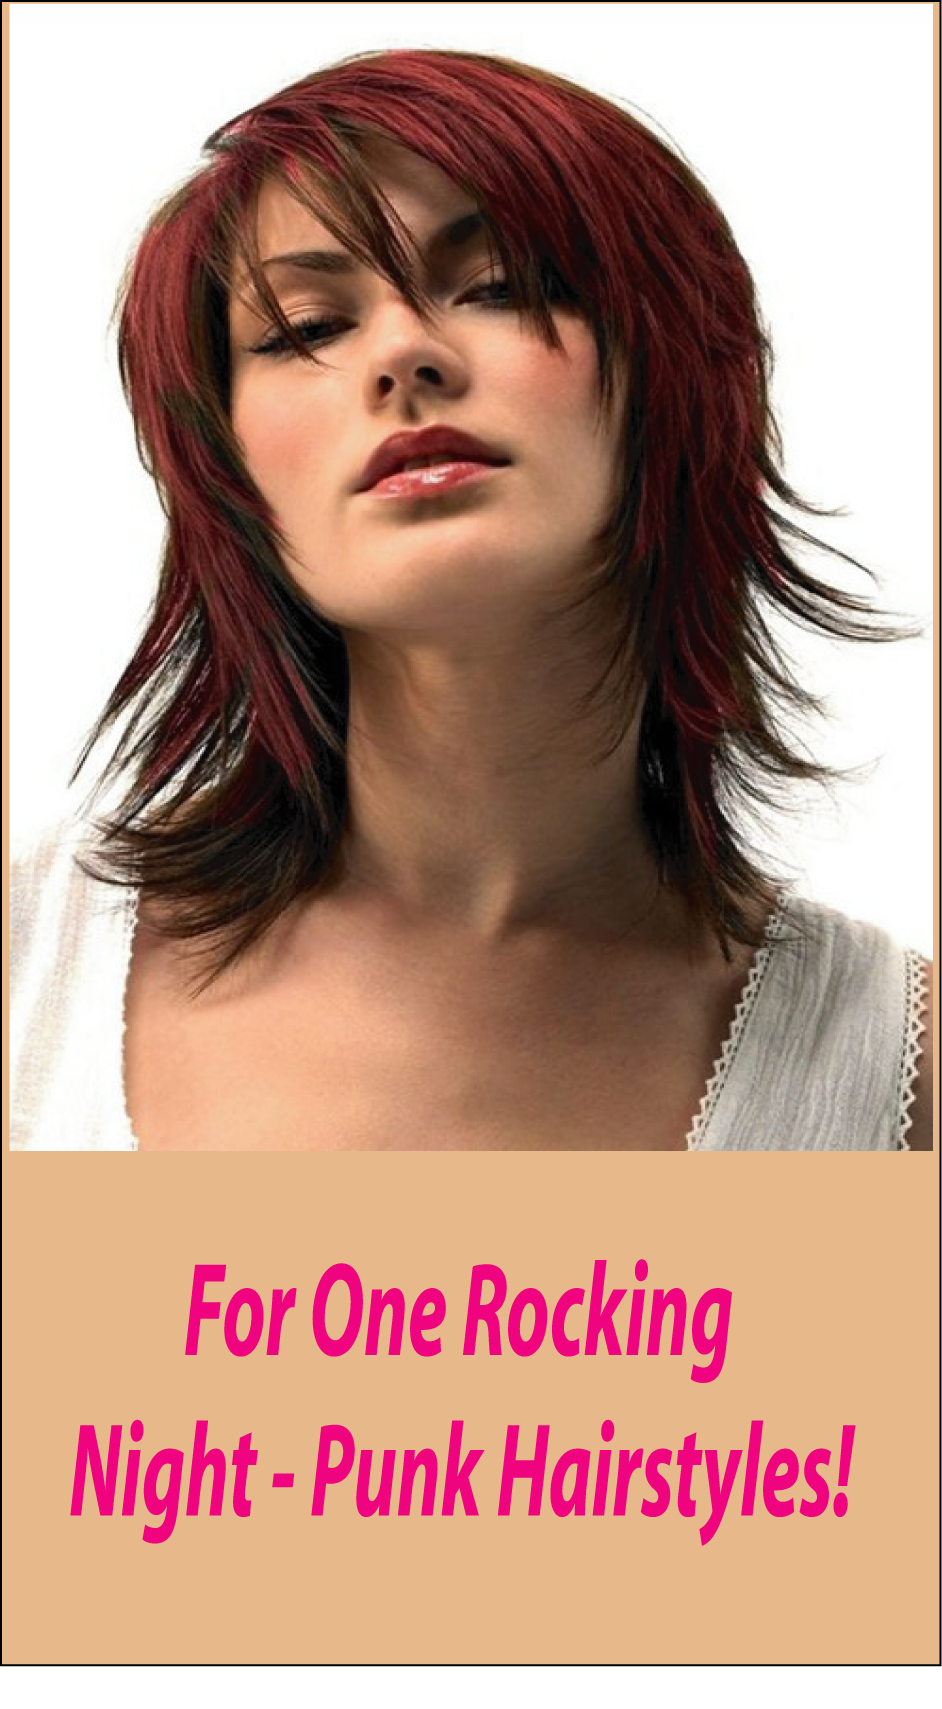 For One Rocking Night Only Punk Hairstyles For You